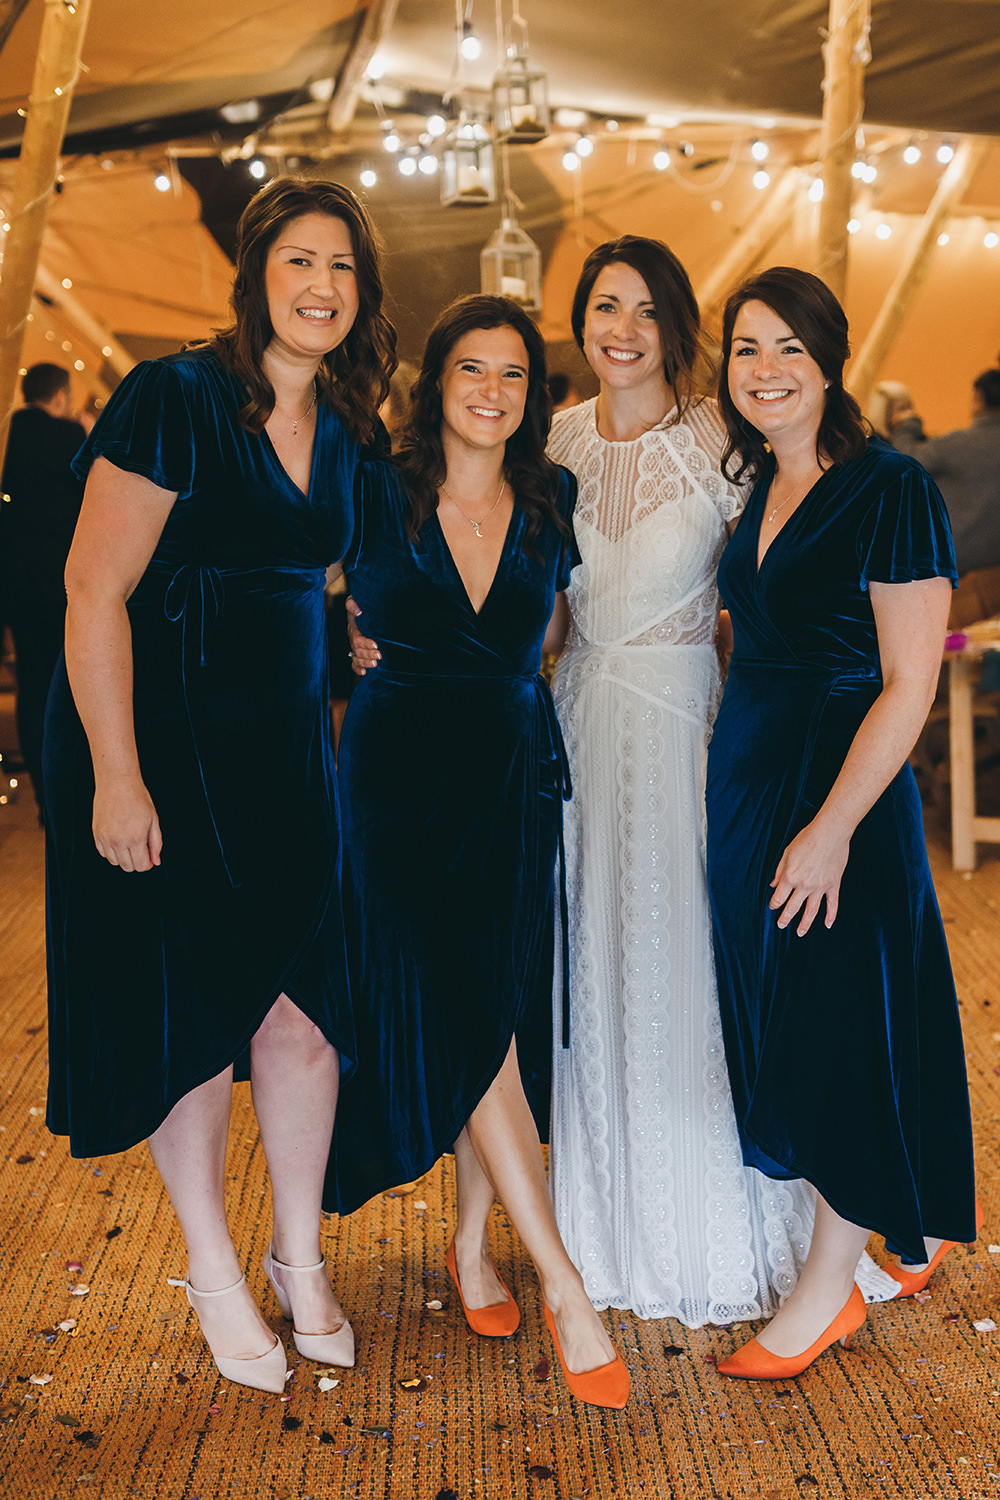 Bridesmaids Bridesmaid Dress Dresses Blue Teal Velvet Autumnal Rustic Wedding Mark Tattersall Photography